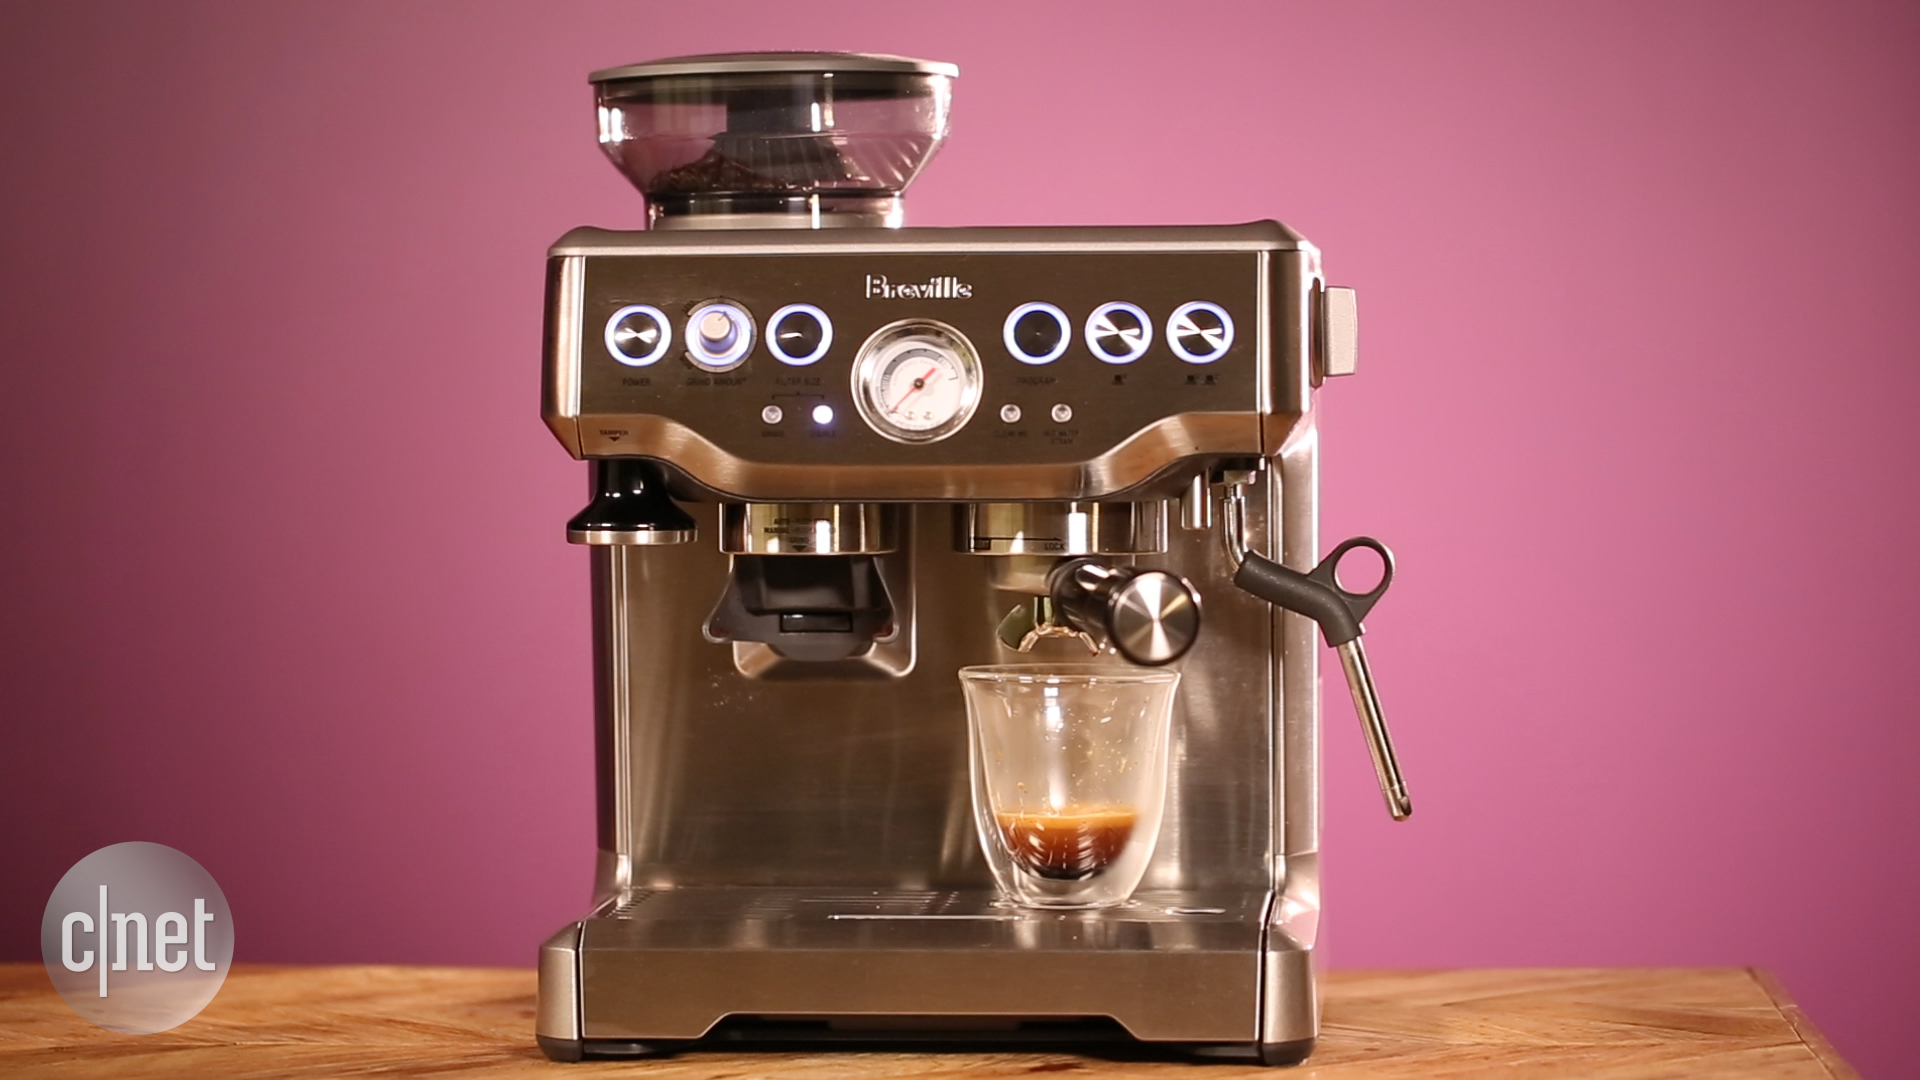 Video: Breville's Barista Express makes delicious espresso and is a snap to use